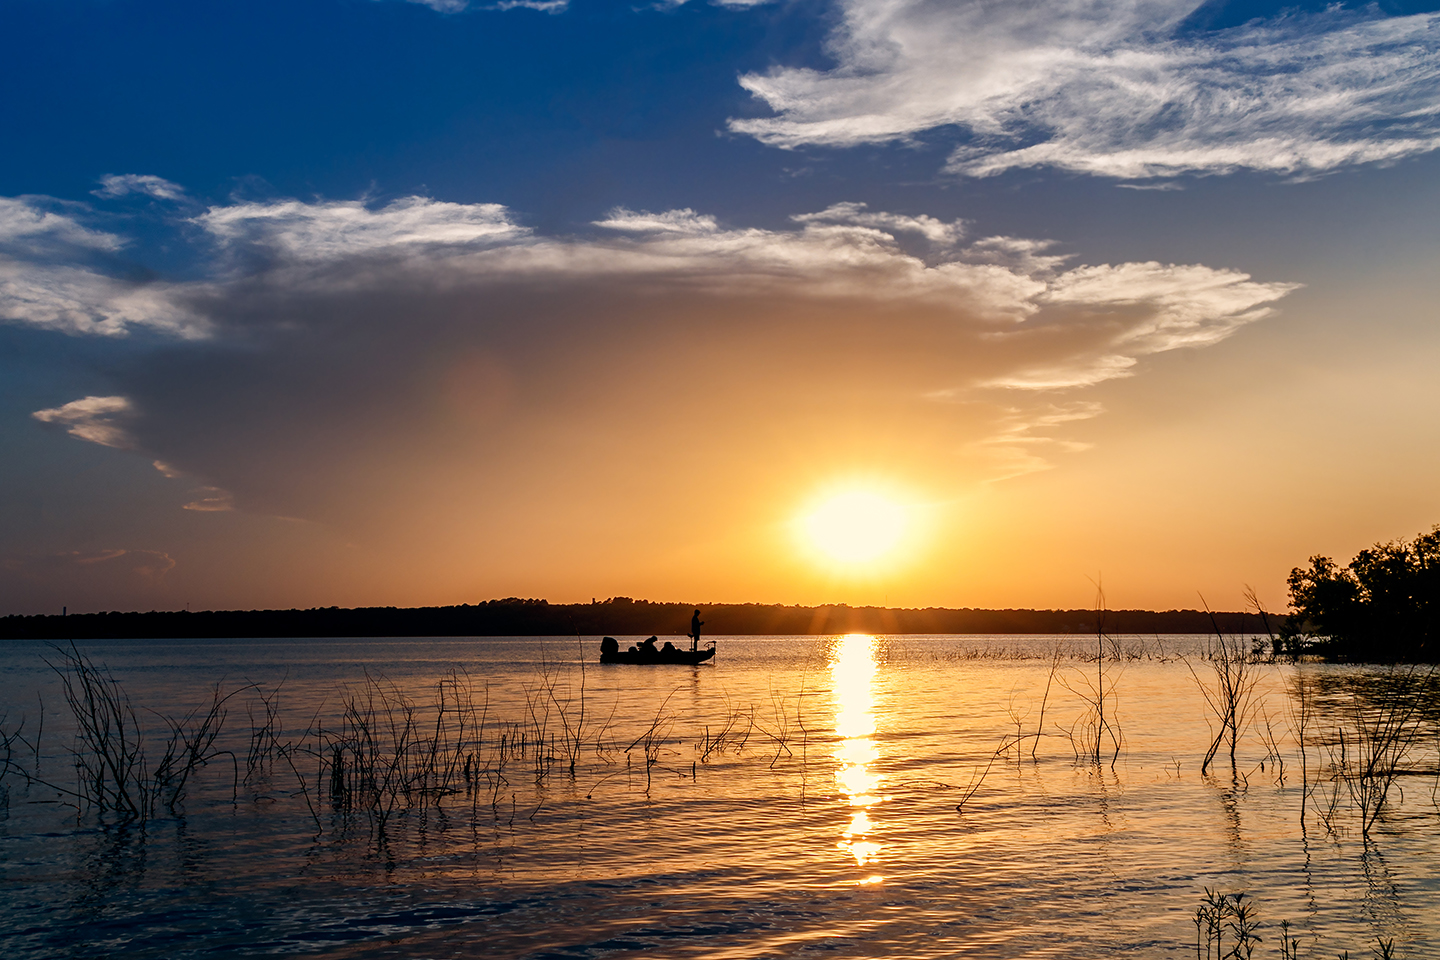 A small boat on a lake in Oklahoma at sunset, with a person fishing off the front of it